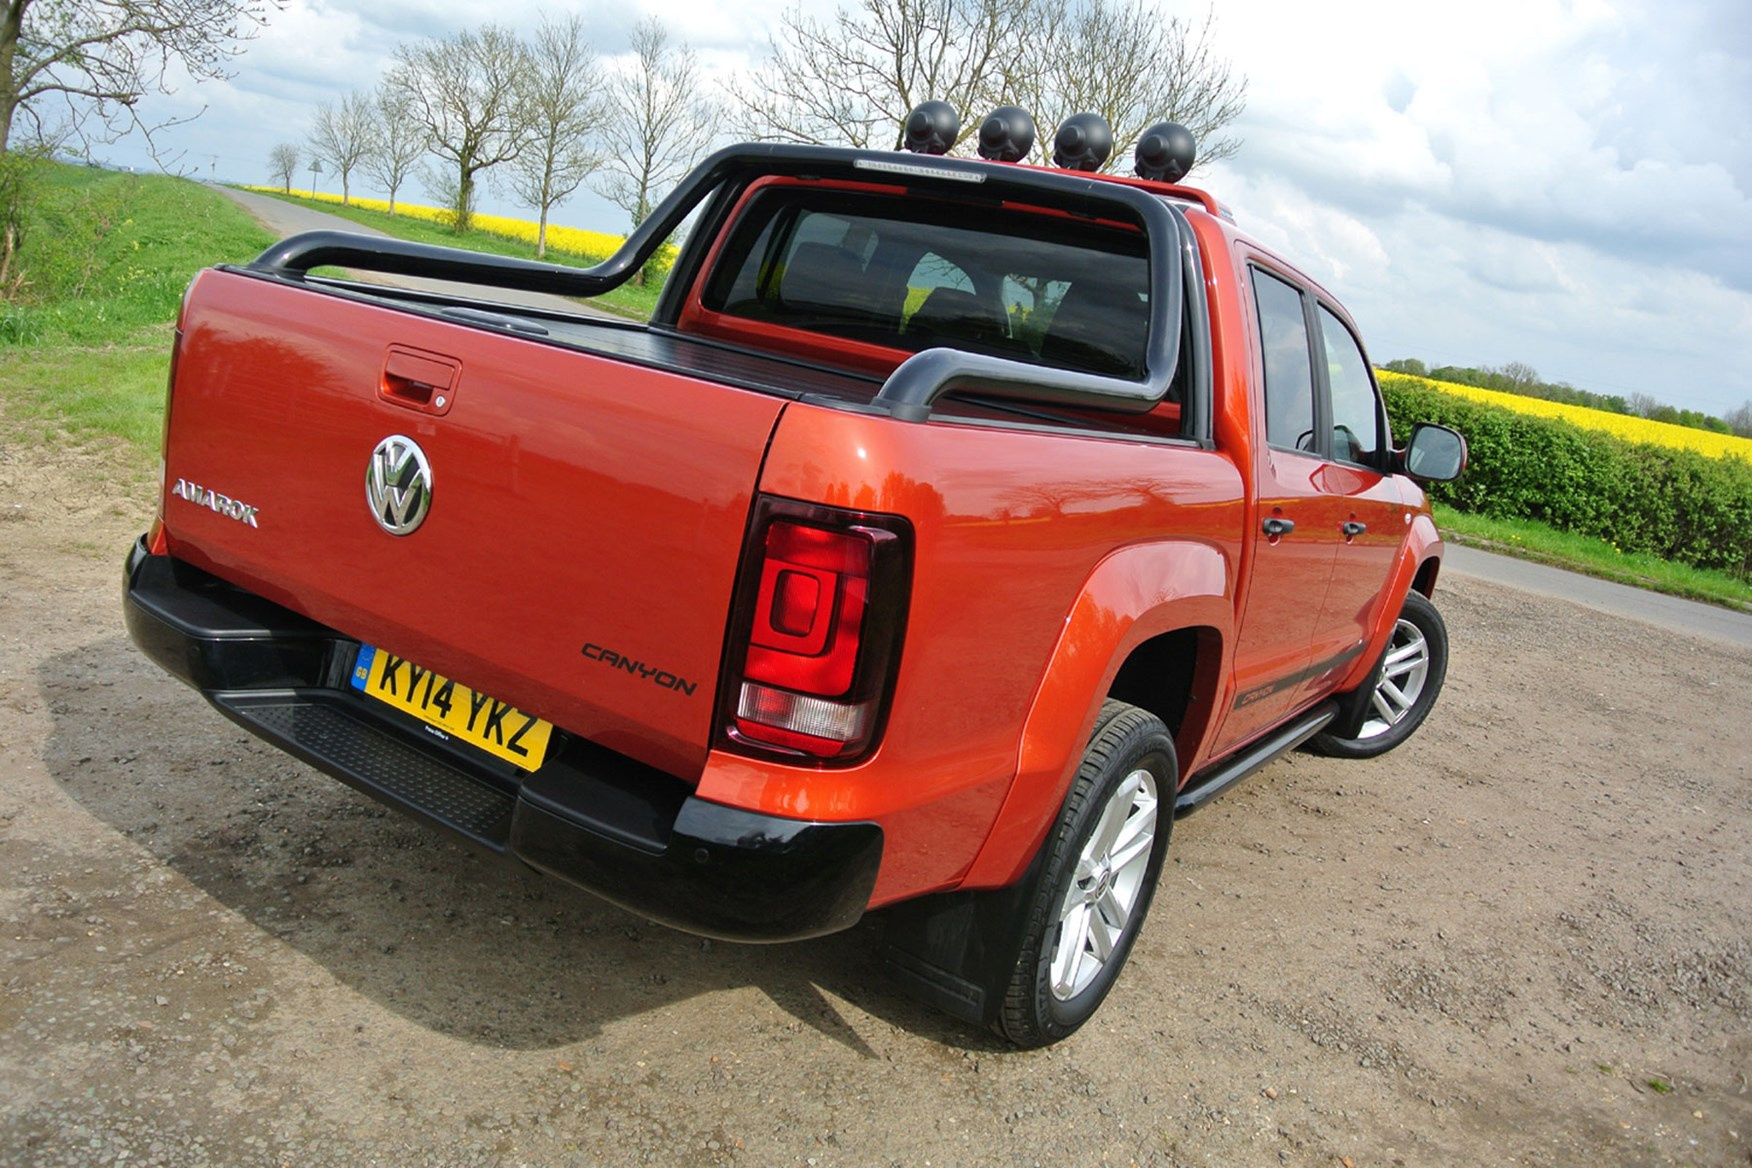 VW Amarok 2.0-litre Canyon 180hp review - rear view, orange